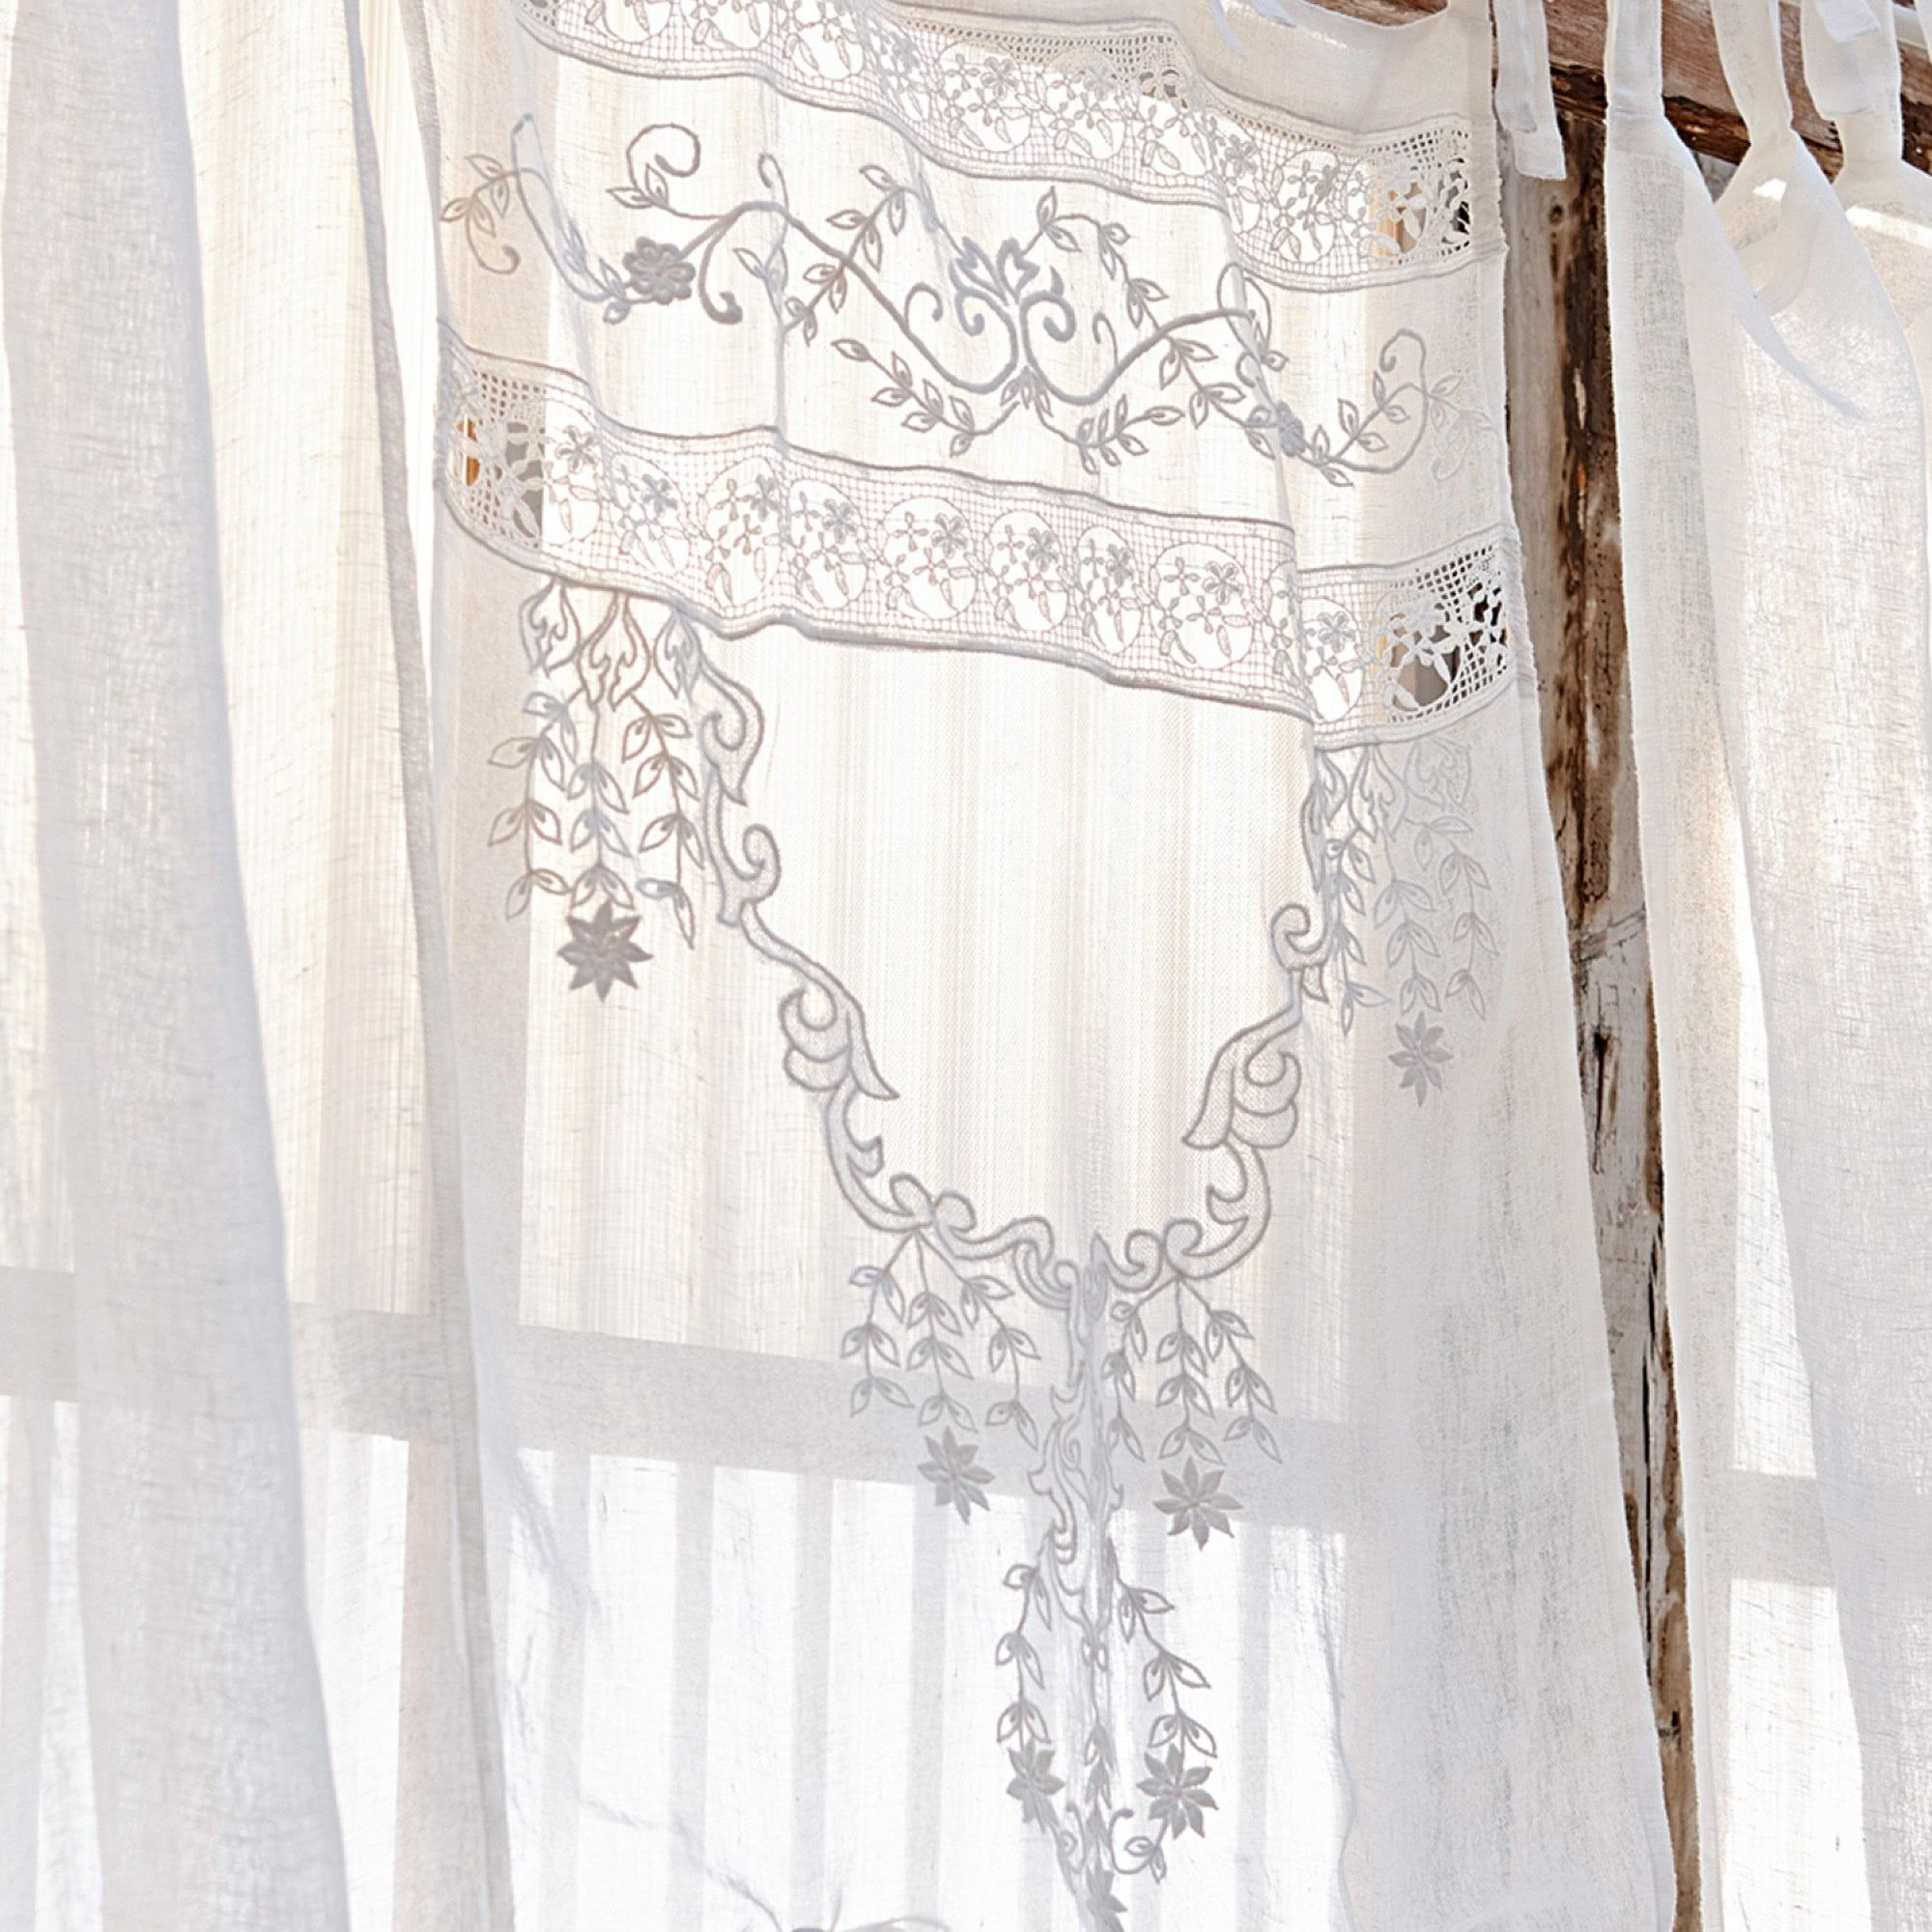 78 Unglaublich Landhaus Scheibengardinen Country Style Curtains Curtains Linens And Lace